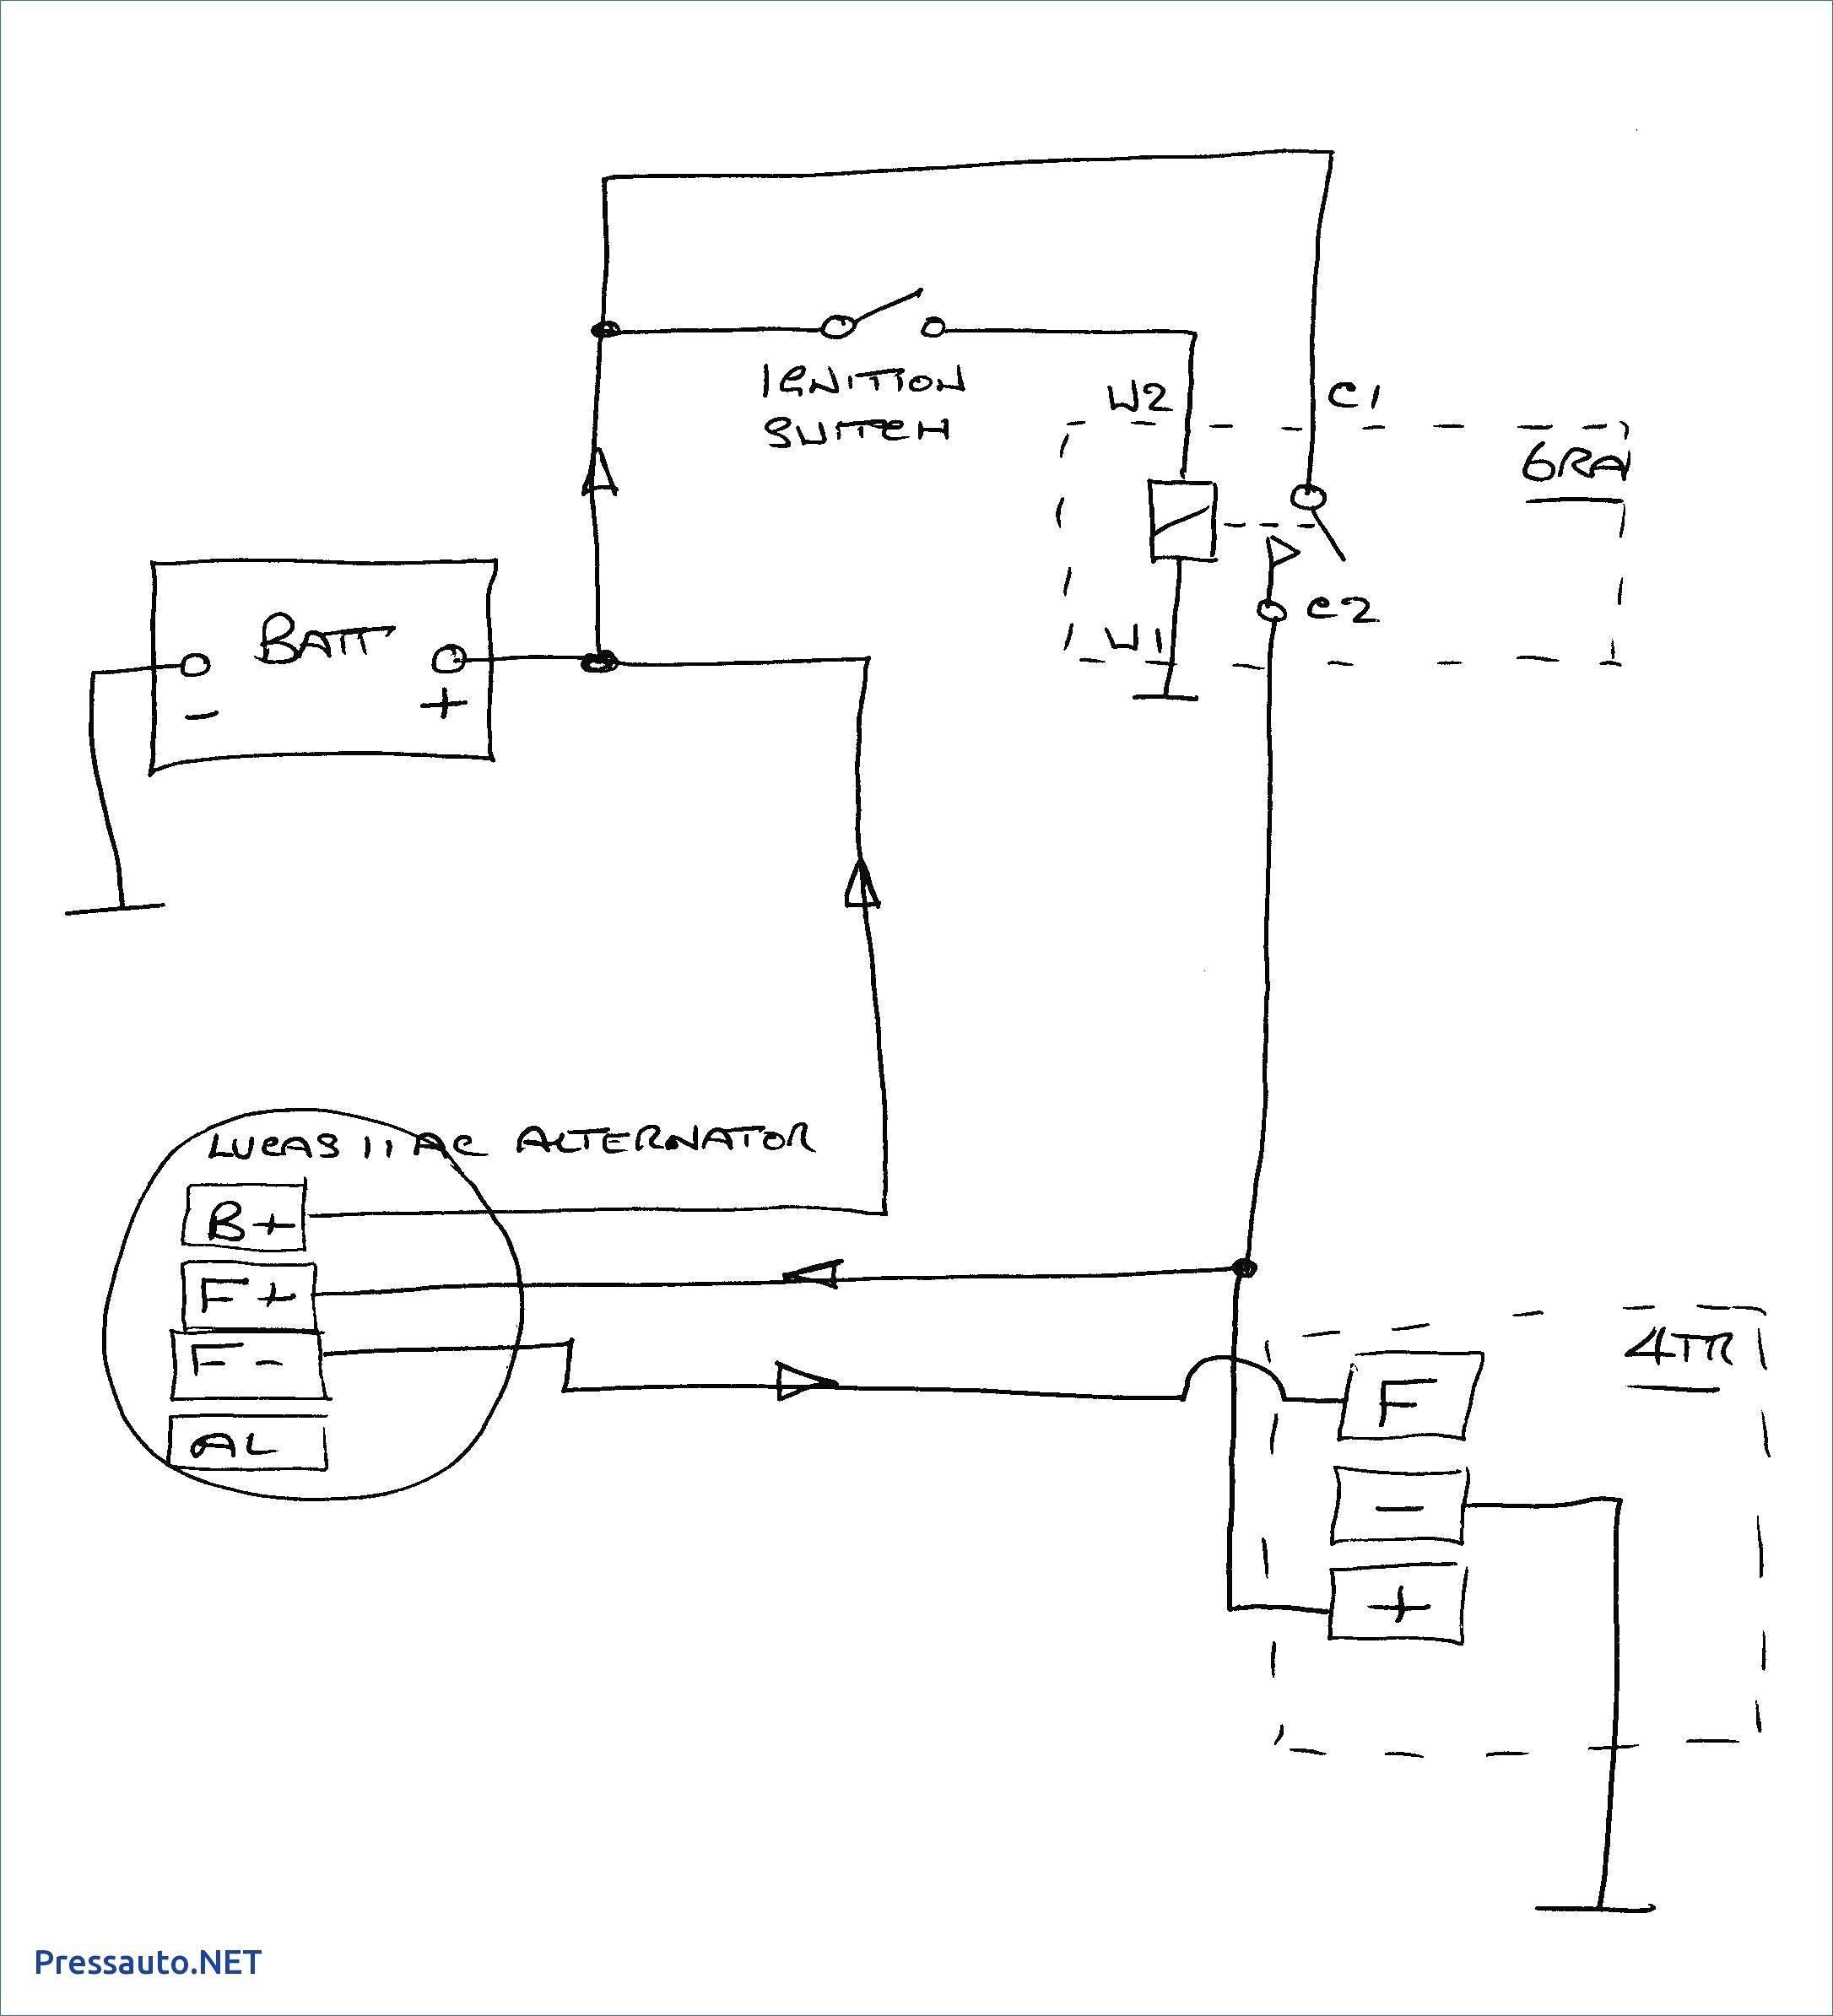 22 Stunning Free Vehicle Wiring Diagrams Diagram Schematic